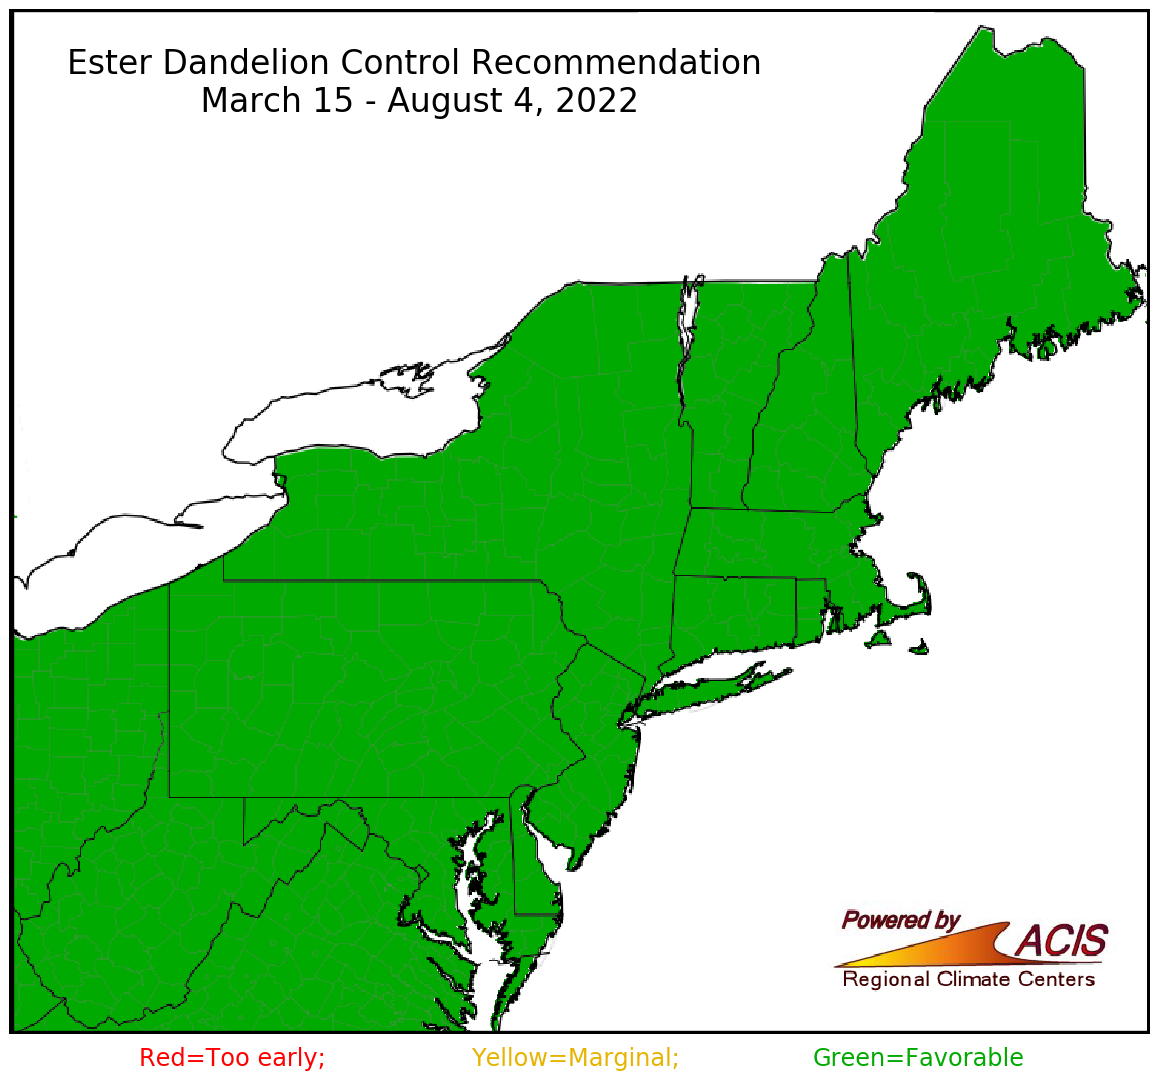 ester dandelion control recommendation